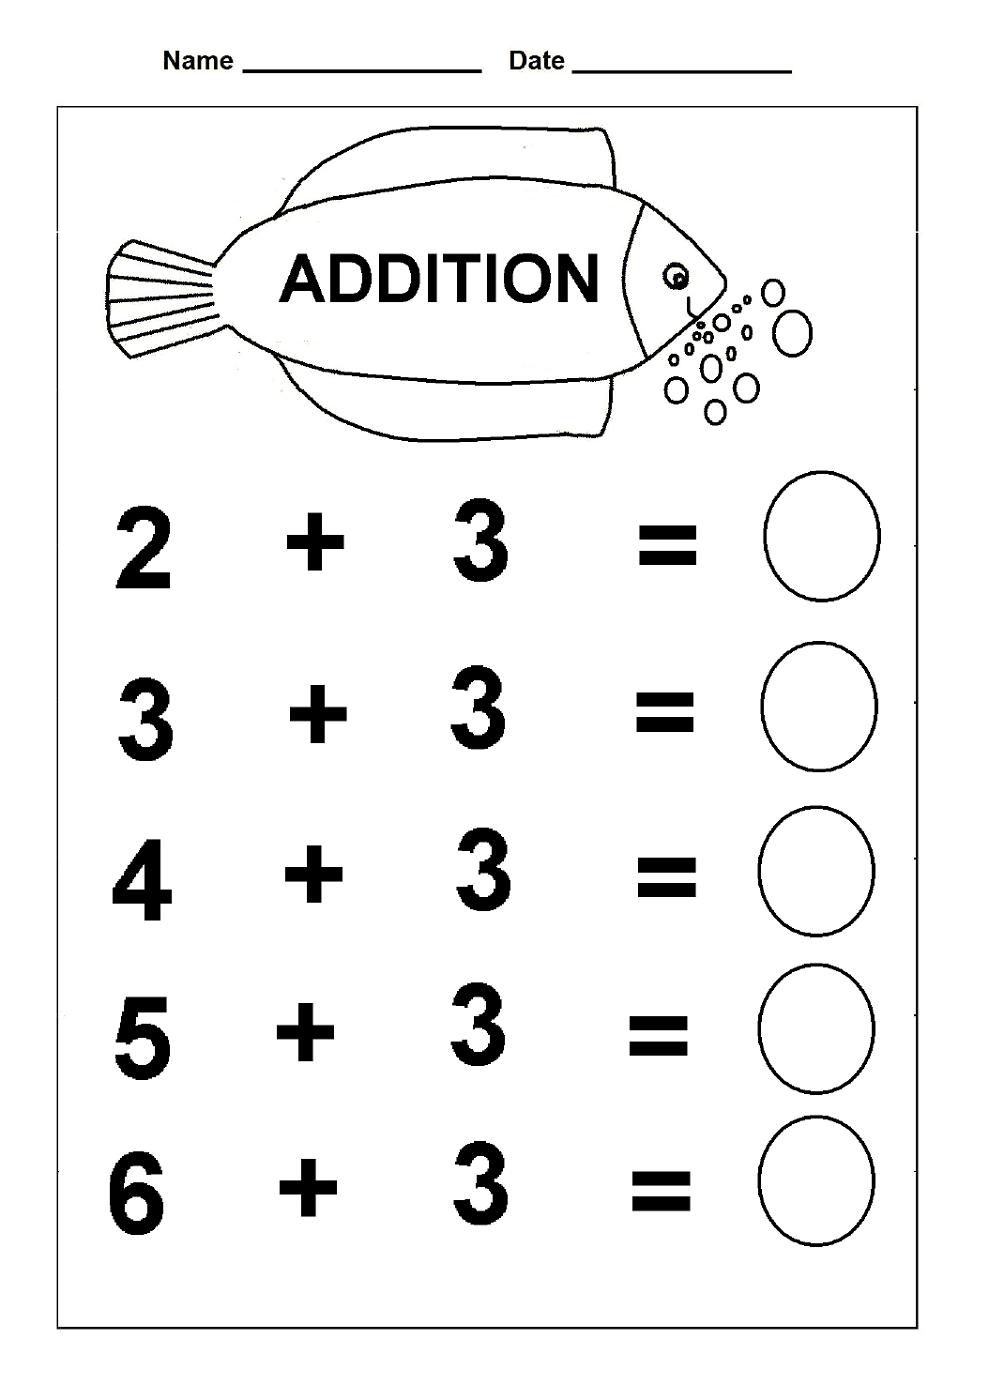 Fun Free Printable Math Worksheets : Math fun worksheets valentine s day activitiesfun